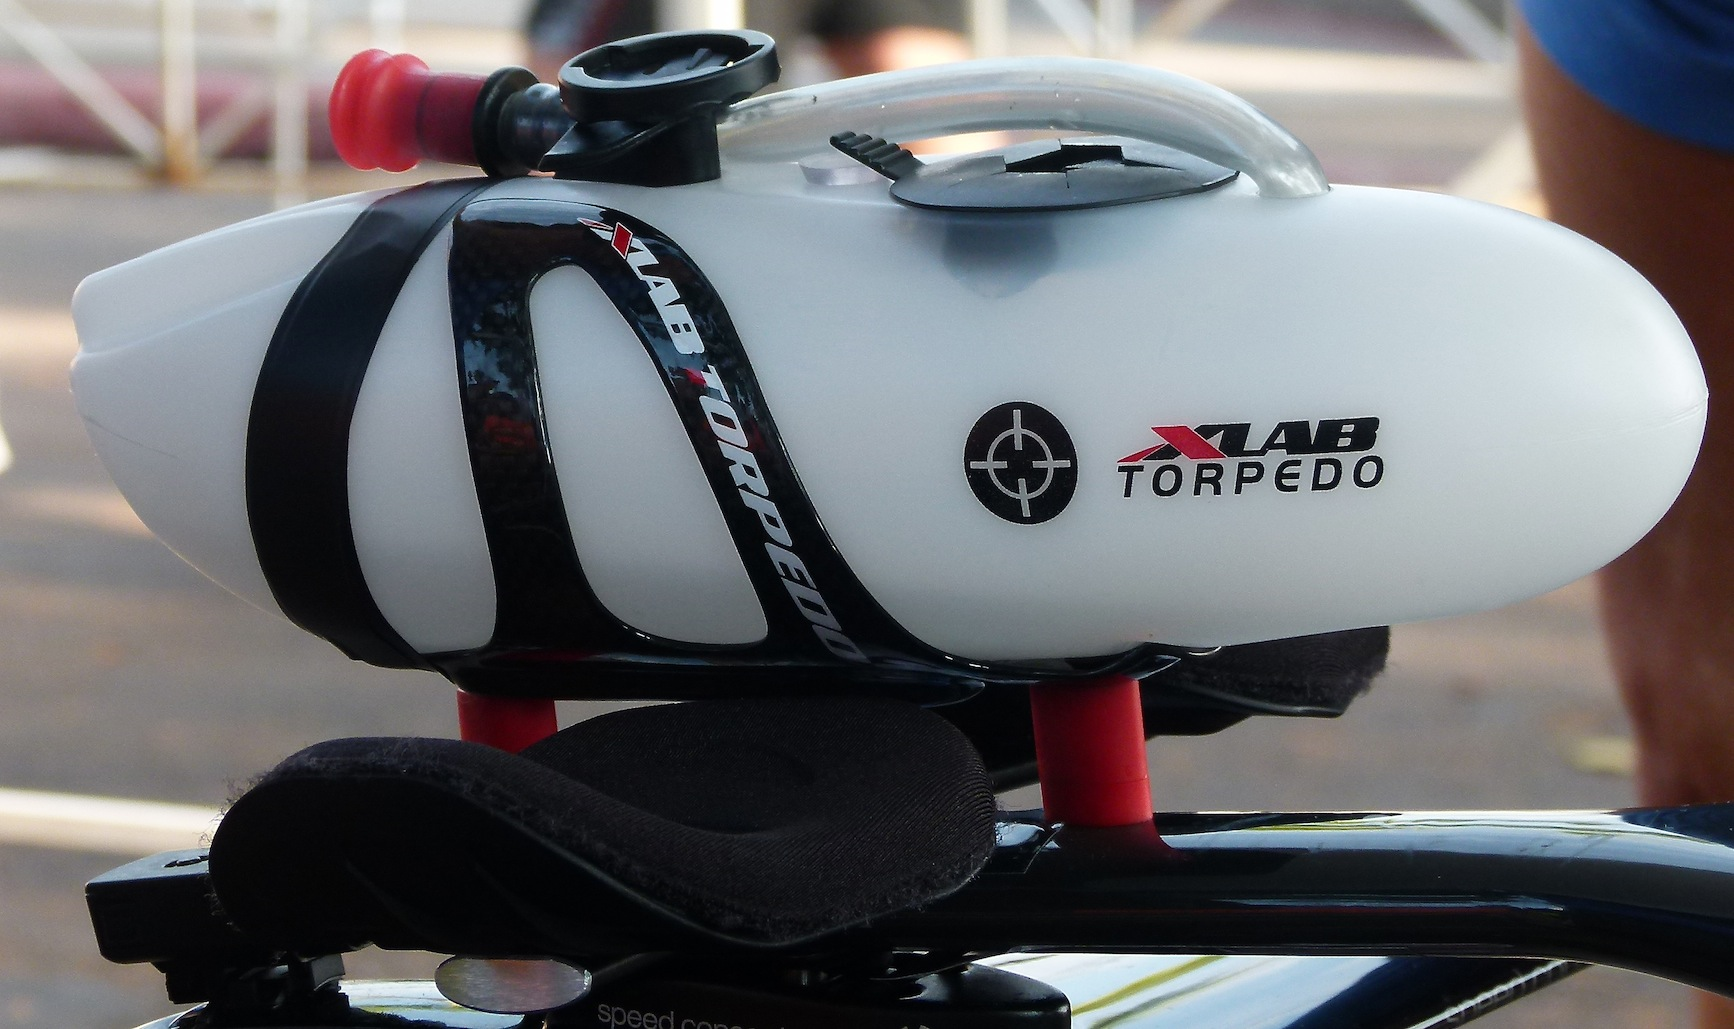 New X Lab Torpedo Bta Bottle Page 12 Triathlon Forum